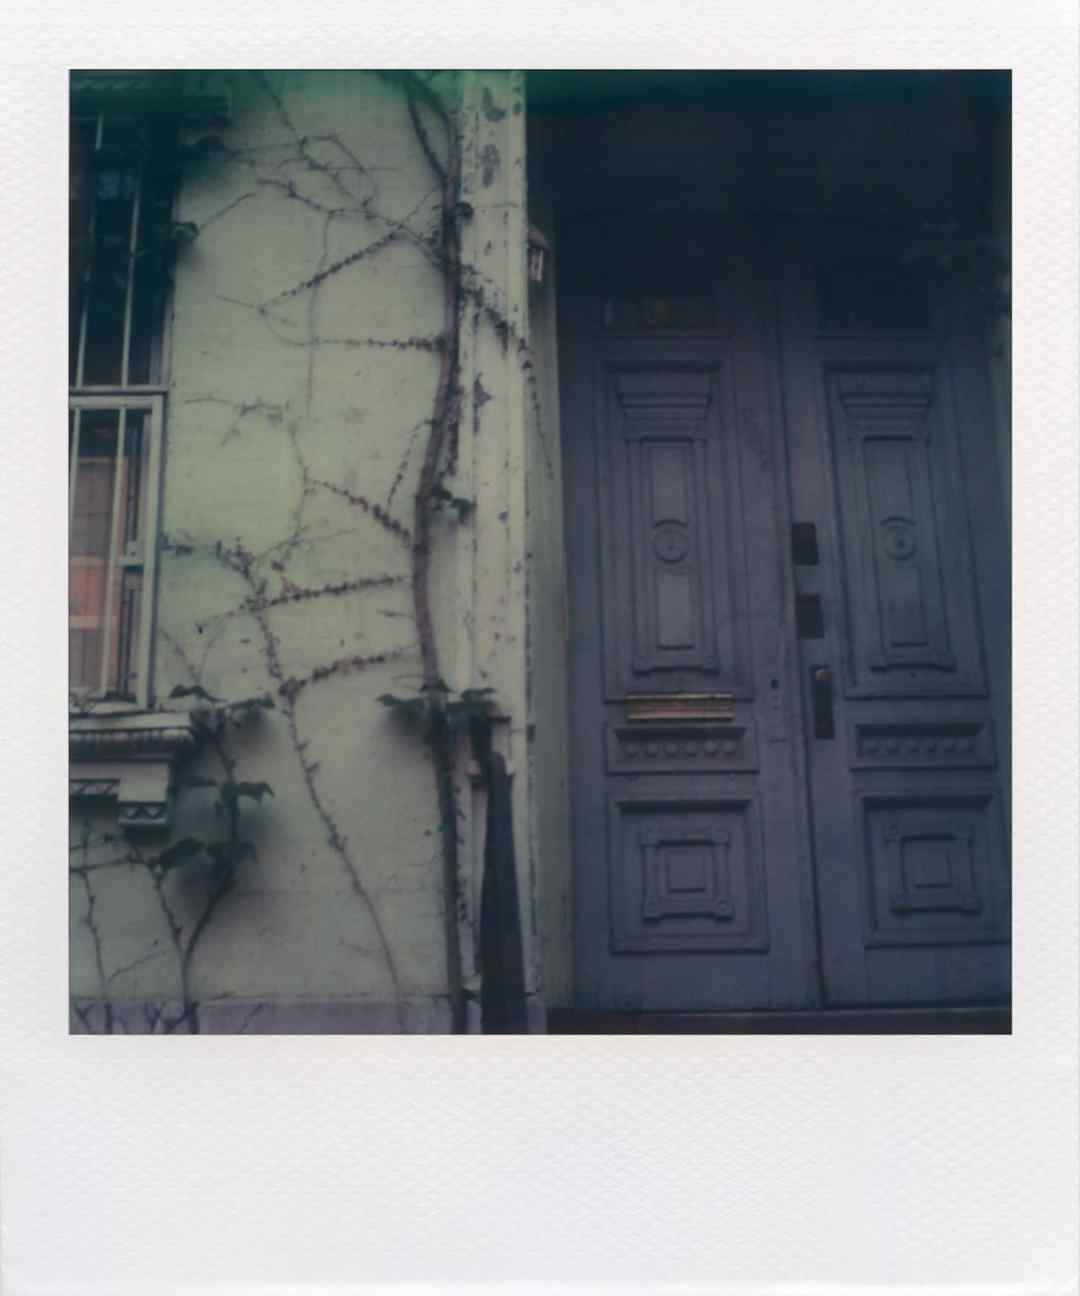 """East 7th St"" (NYC 2008) - Polaroid SX-70 Alpha 1 Land Camera and first-edition TZ Artistic film"